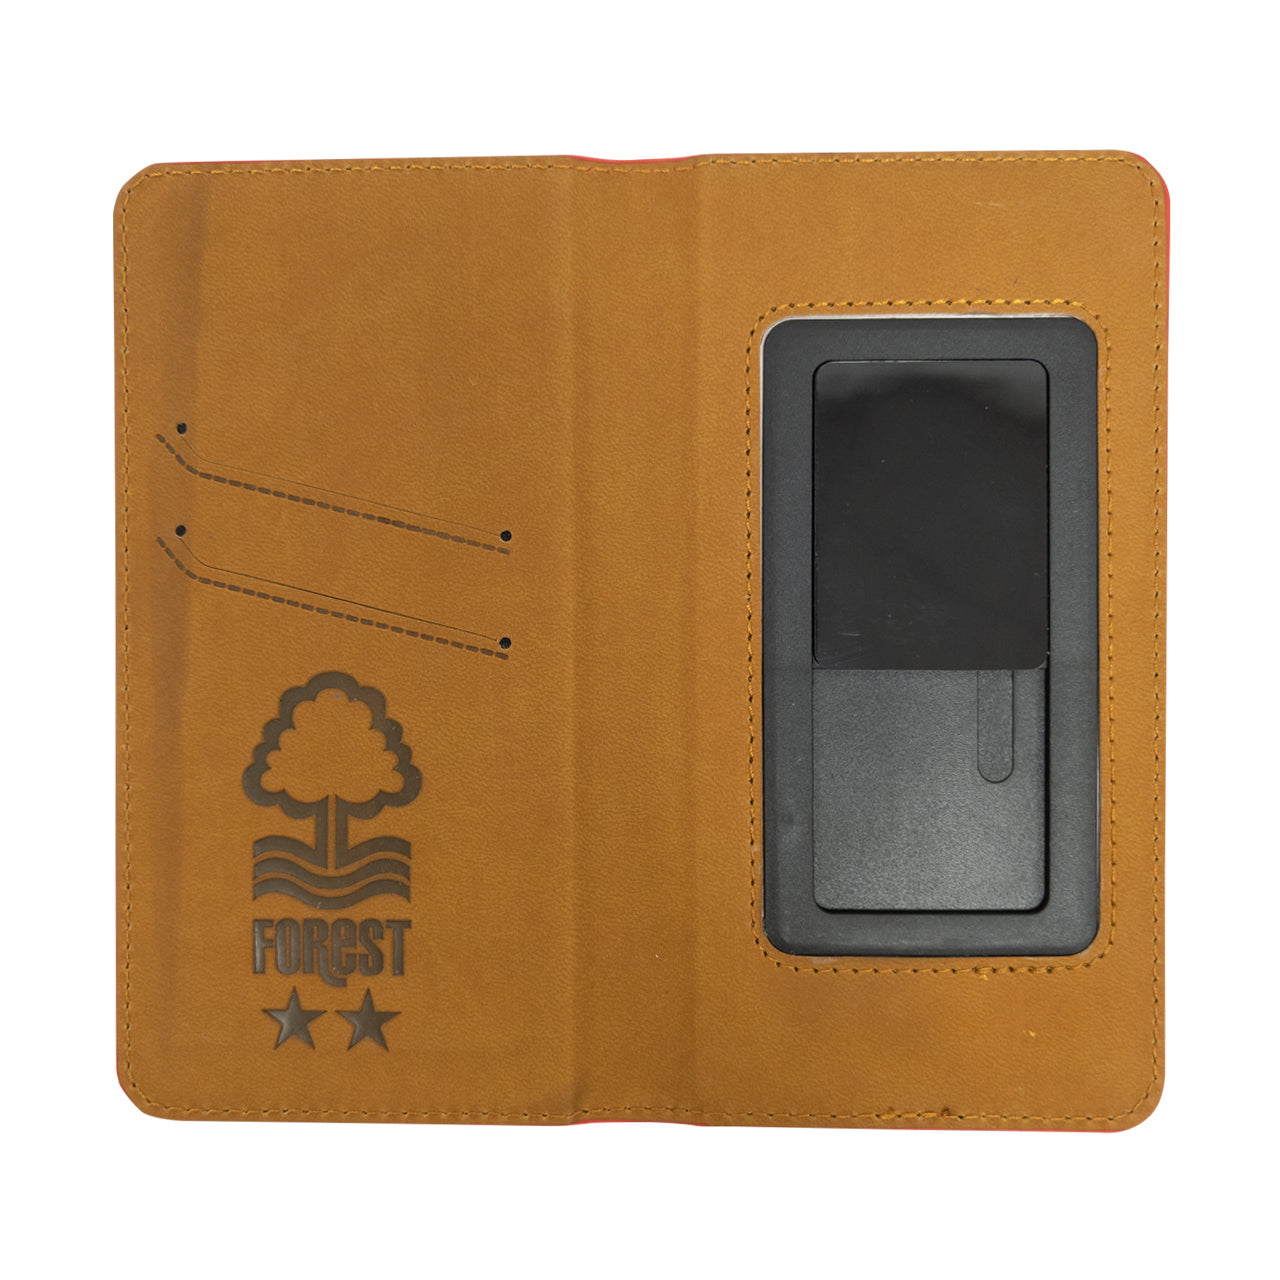 NFFC Universal Smartphone Case